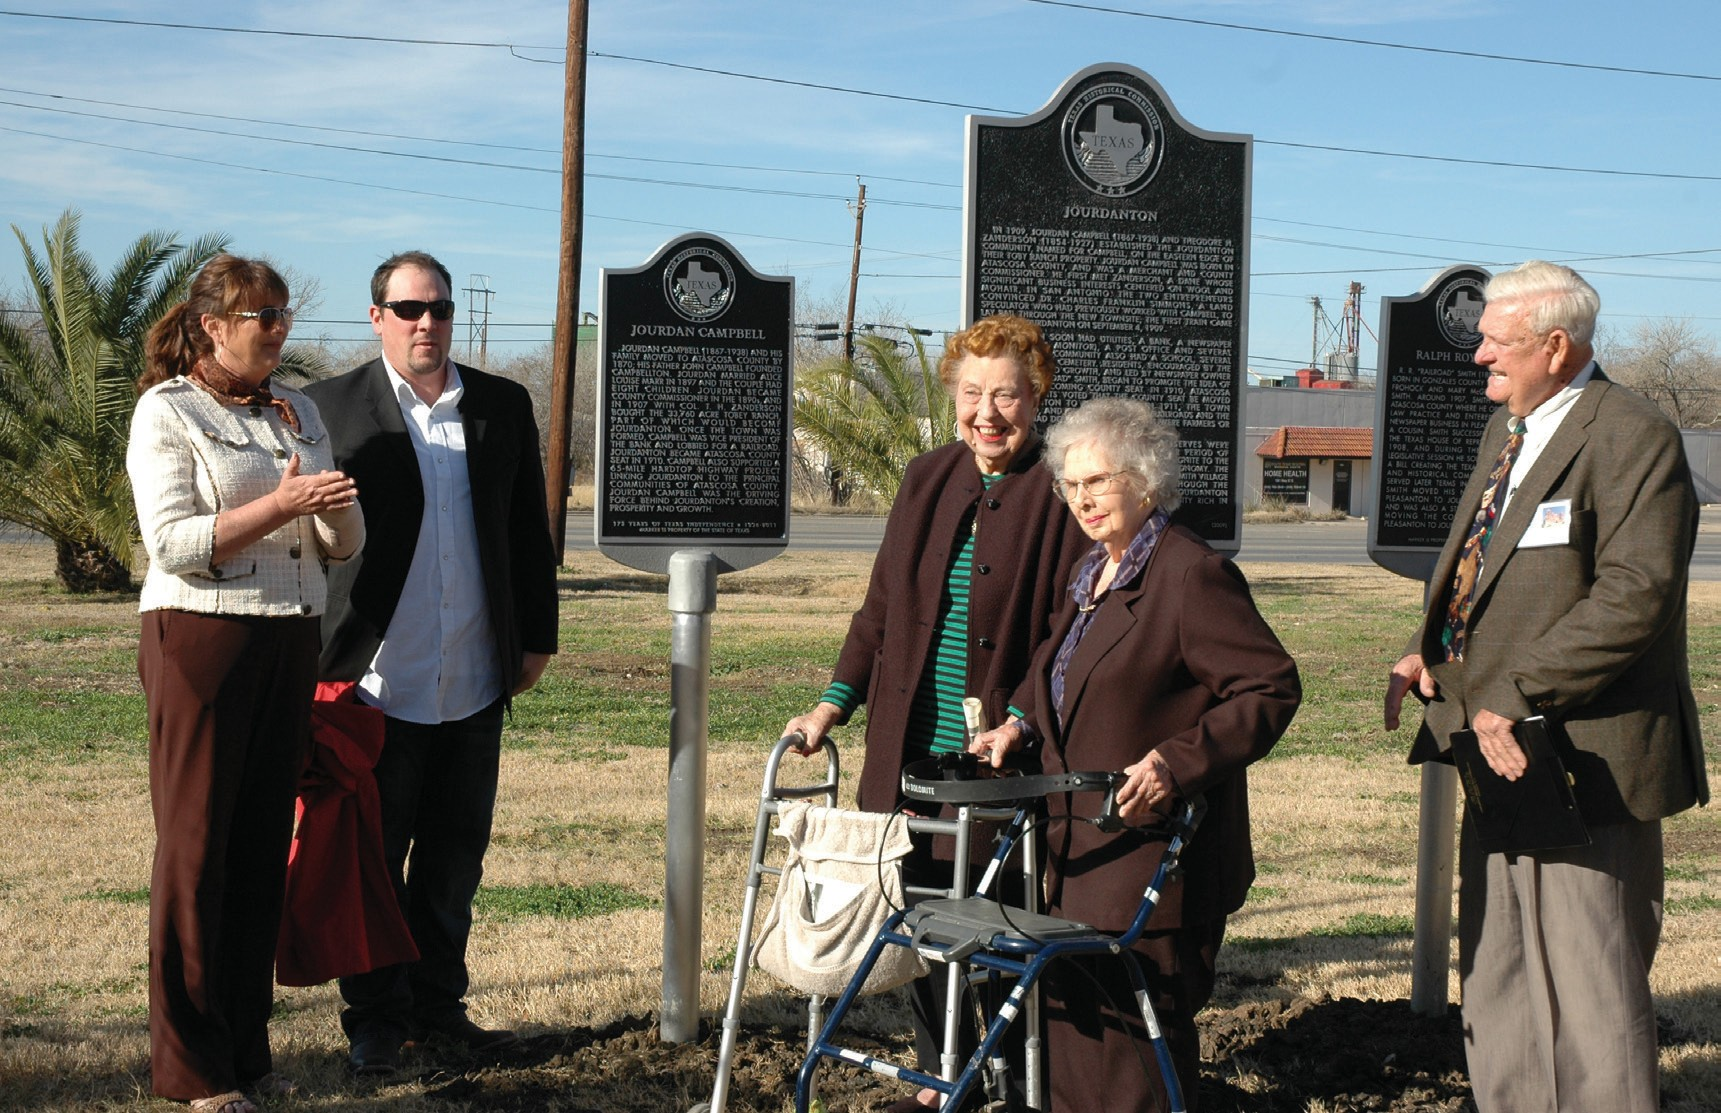 Descendants of Jourdan Campbell, Roxanne and her son August Peters (from left) unveil the newest historical marker at the dedication ceremony held in conjunction with the grand opening of the new Jourdanton Municipal Complex. Jourdine Tymrak and Lillian Wiede, longtime residents of Jourdanton join in the celebration along with Norman F. Porter Sr., Chairman of the Atascosa County Historical Commission.